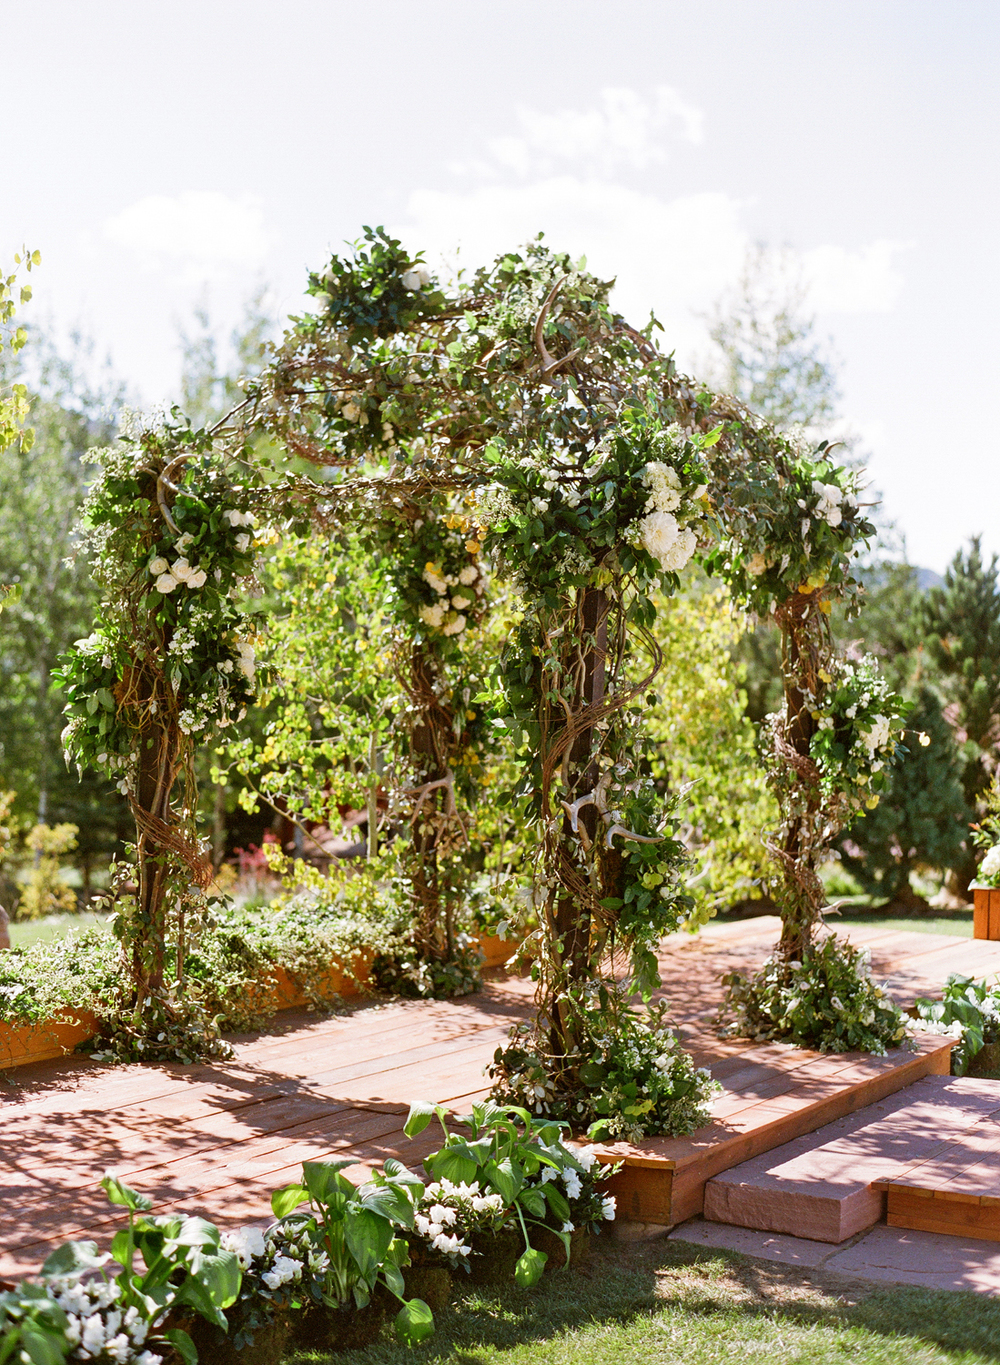 Outdoor wedding arbor made of greenery